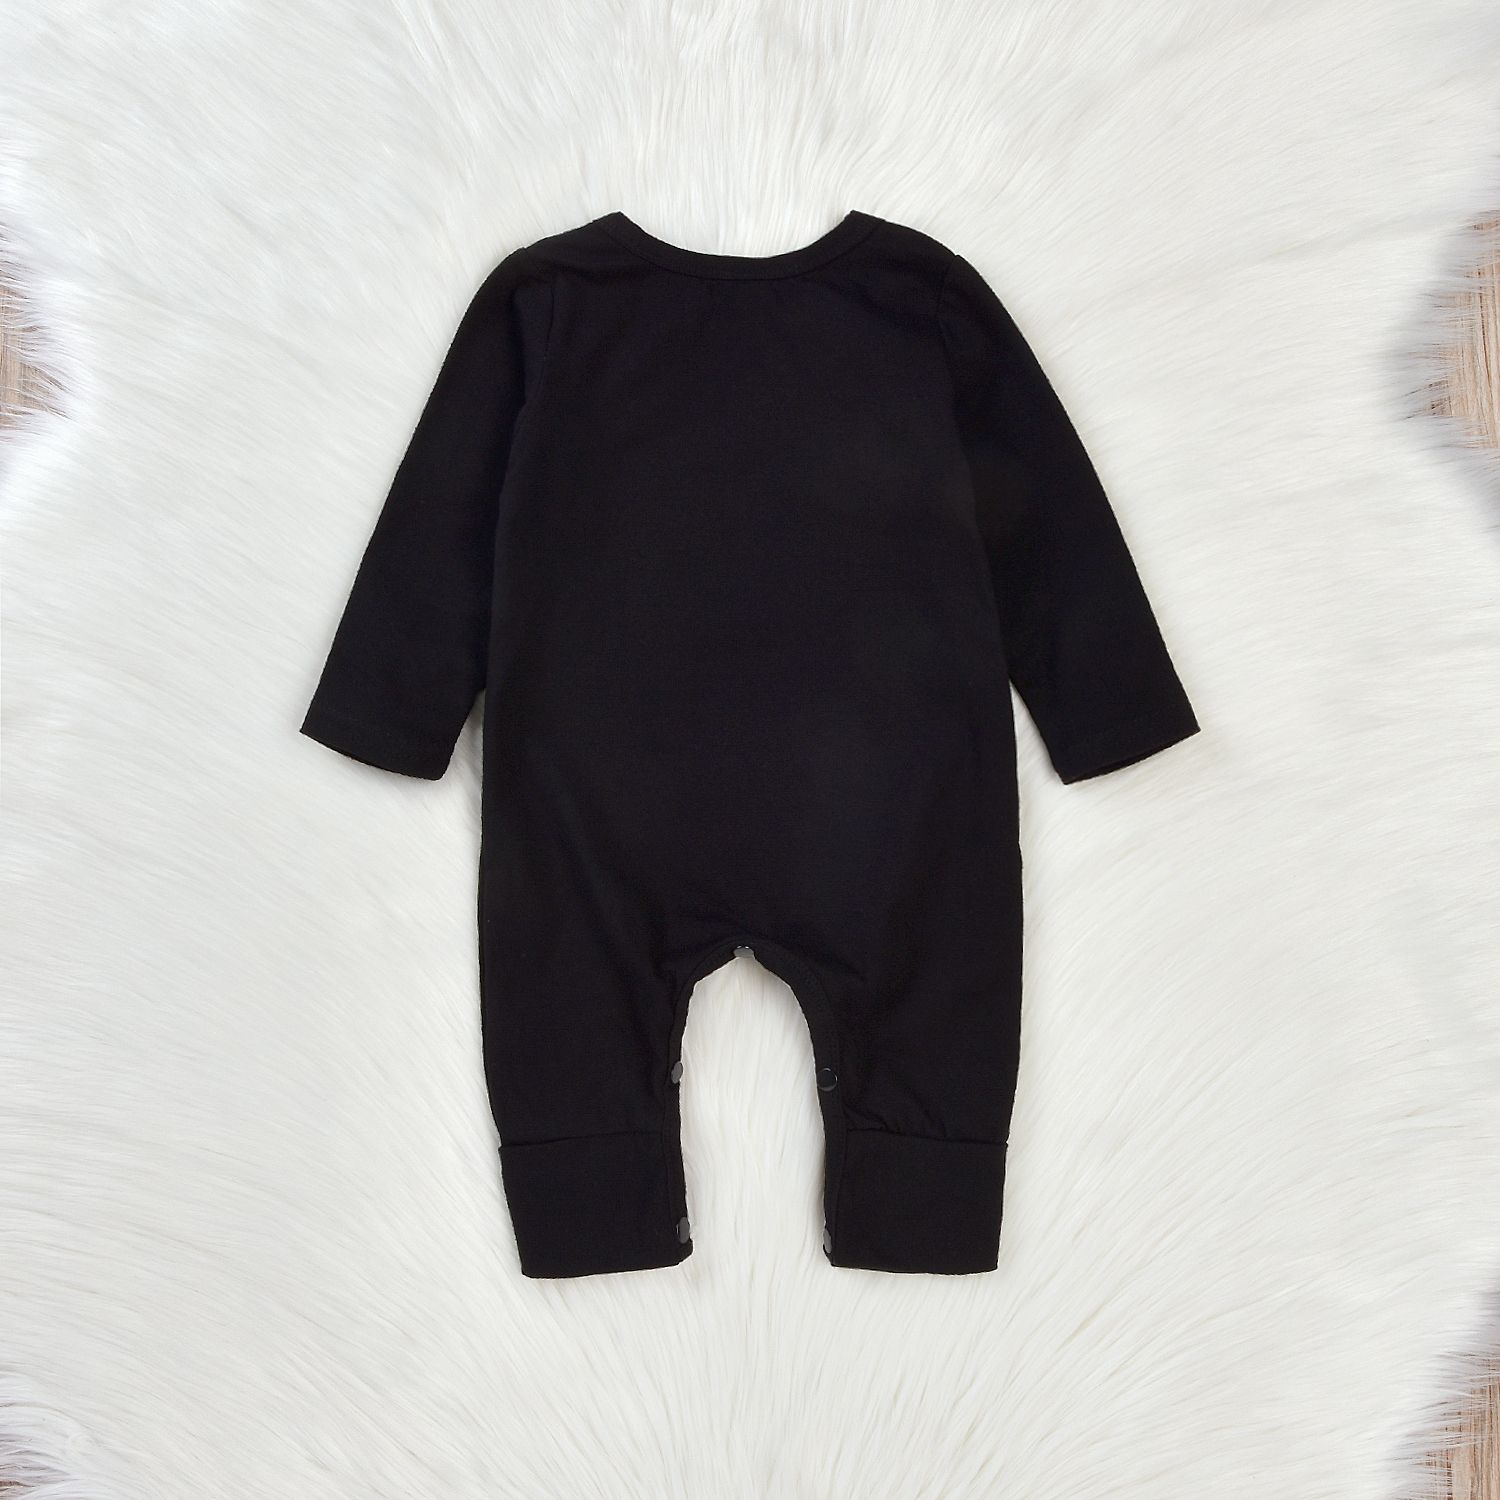 17 Cute Baby Boy Girls Halloween Romper Cotton Jumpsuit Playsuit Fall Winter Clothes Outfit 0-18M 6